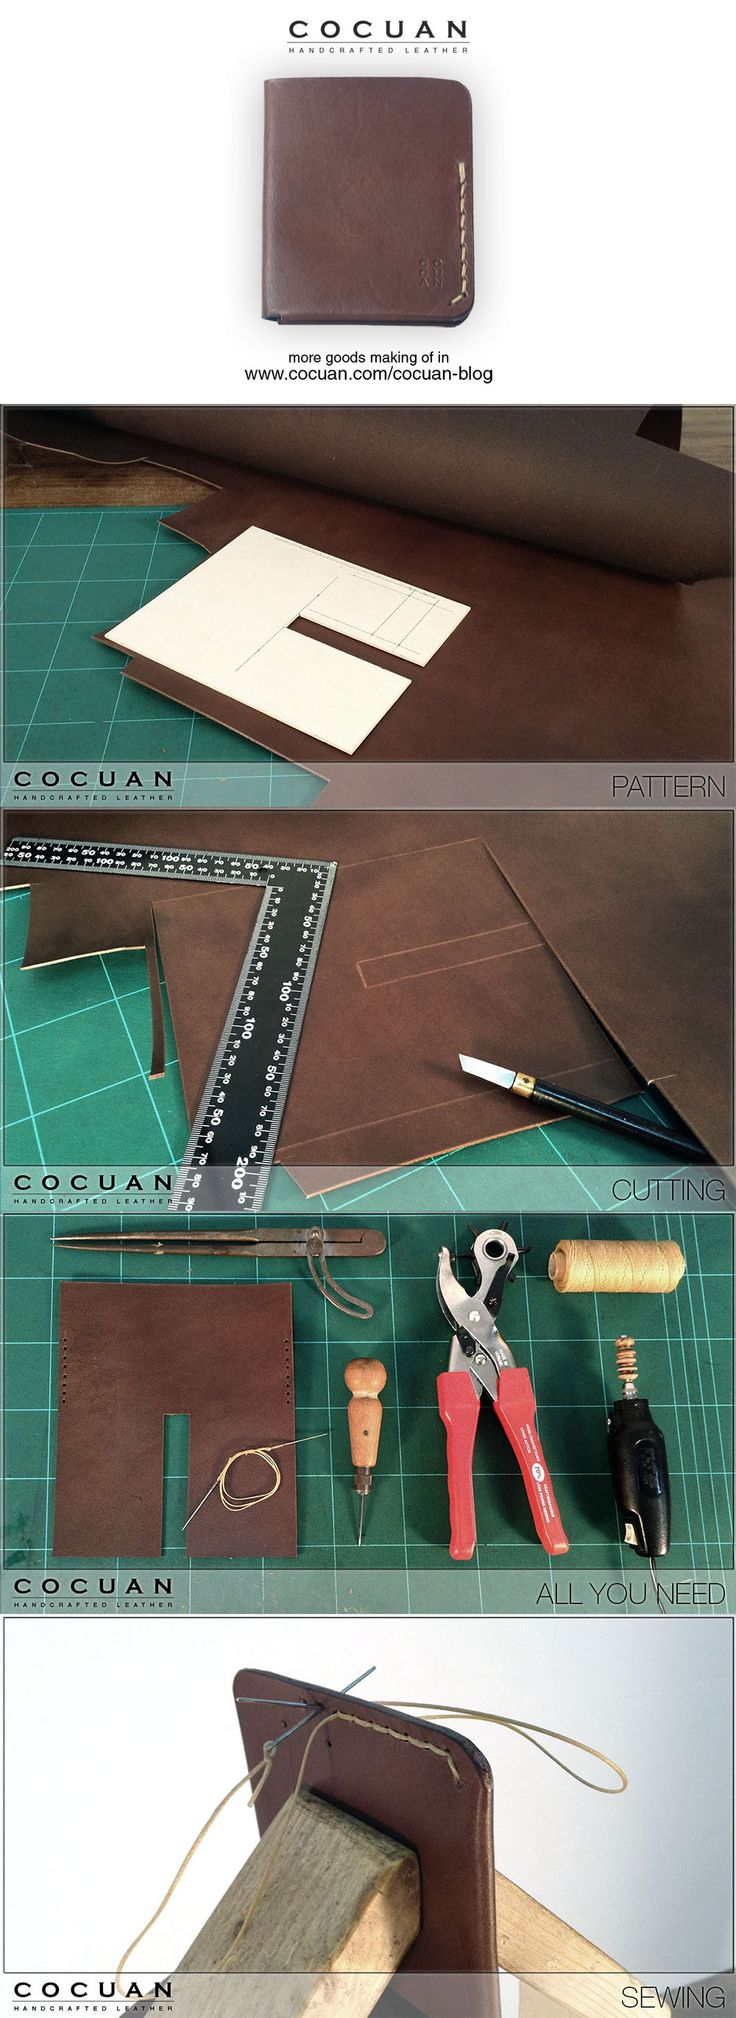 The making of bifold wallet